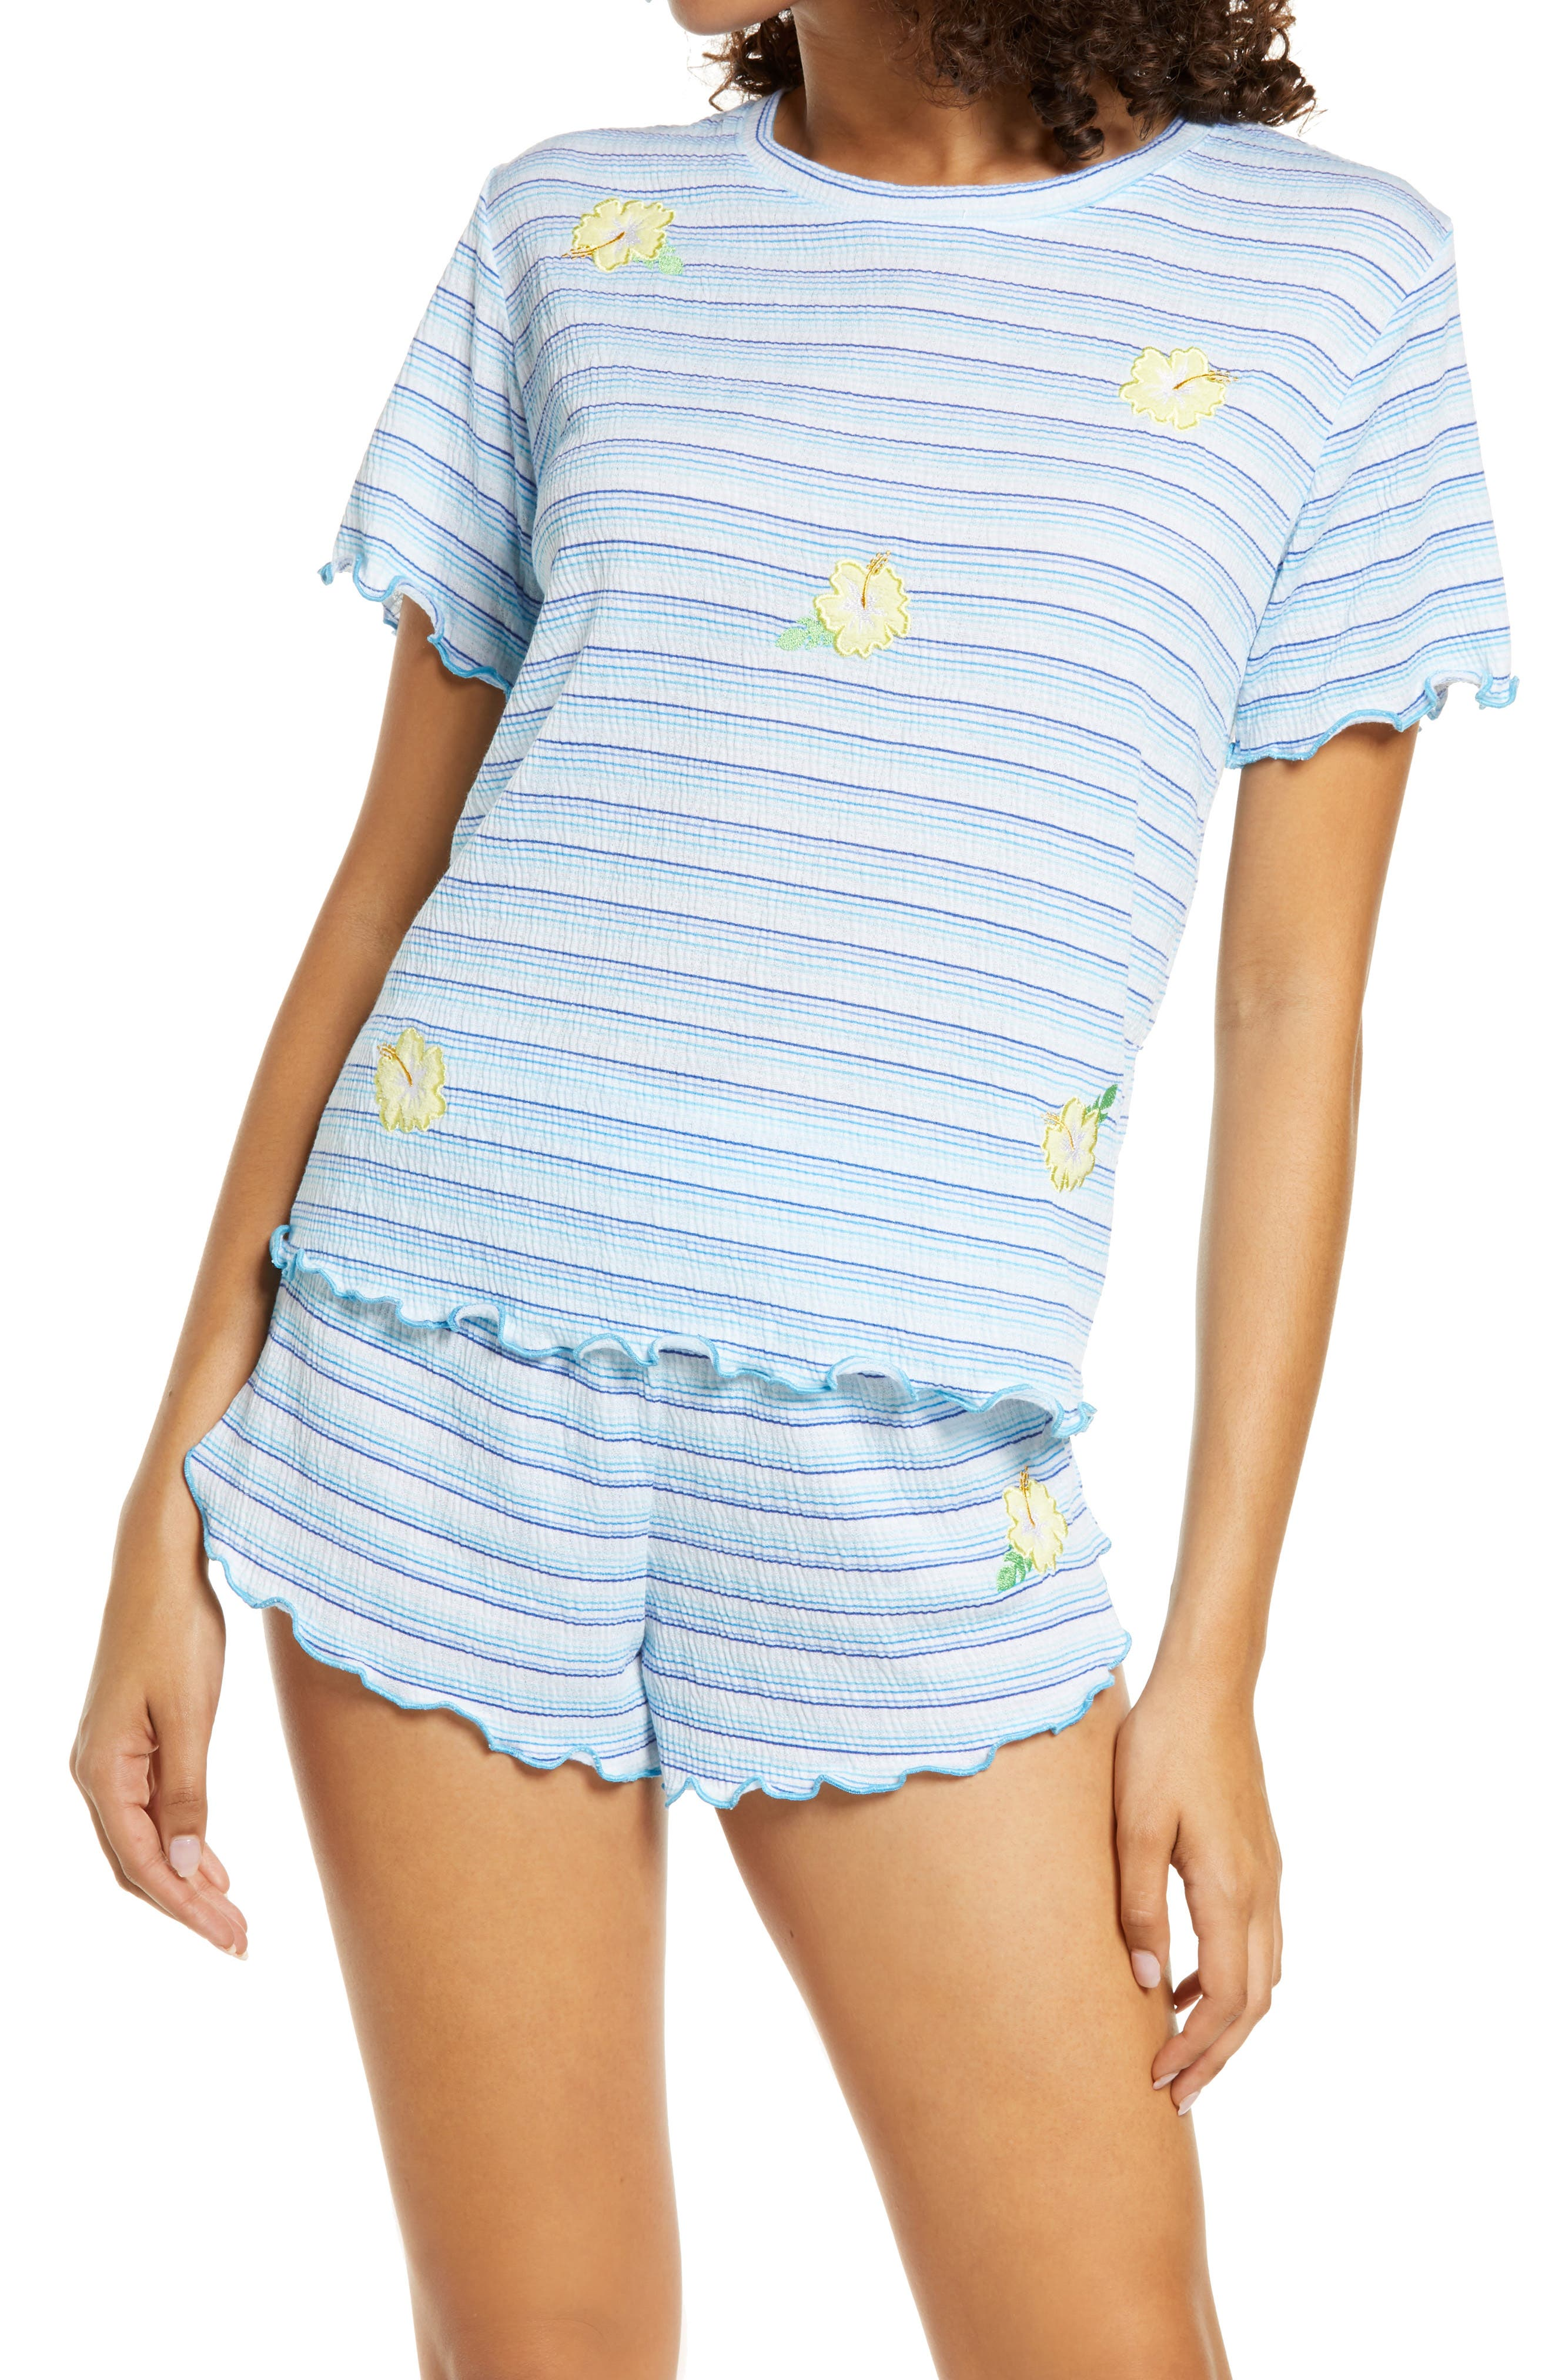 Women's Relaxed Fit Short Pajamas